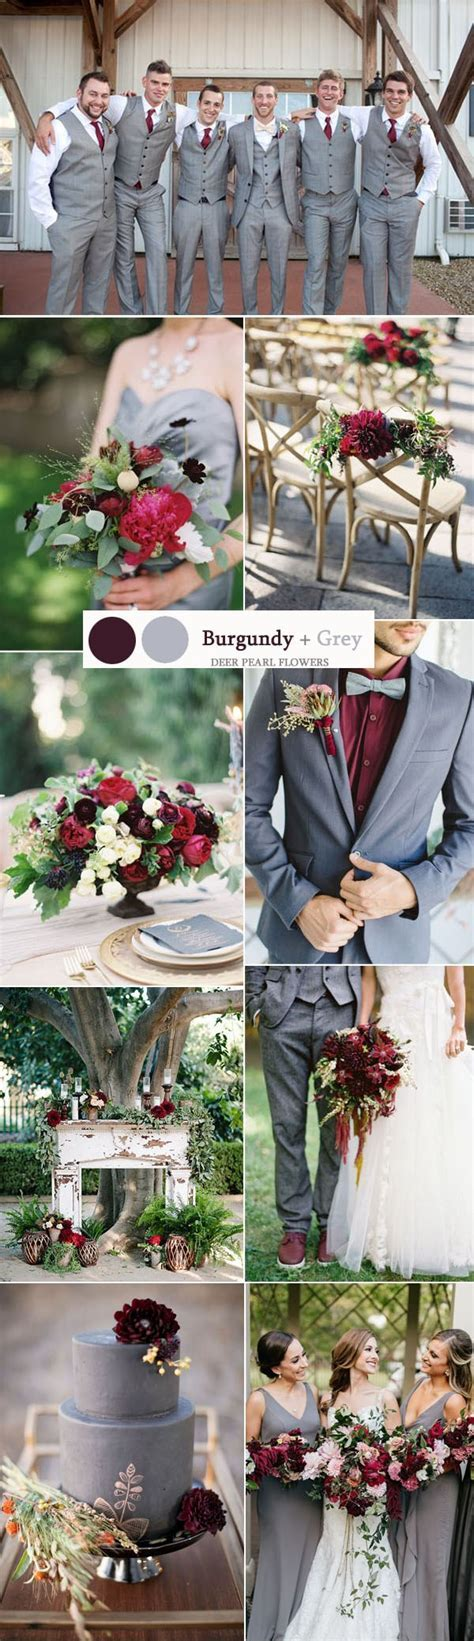 Top 8 Burgundy Wedding Color Palettes You'll Love   Deer